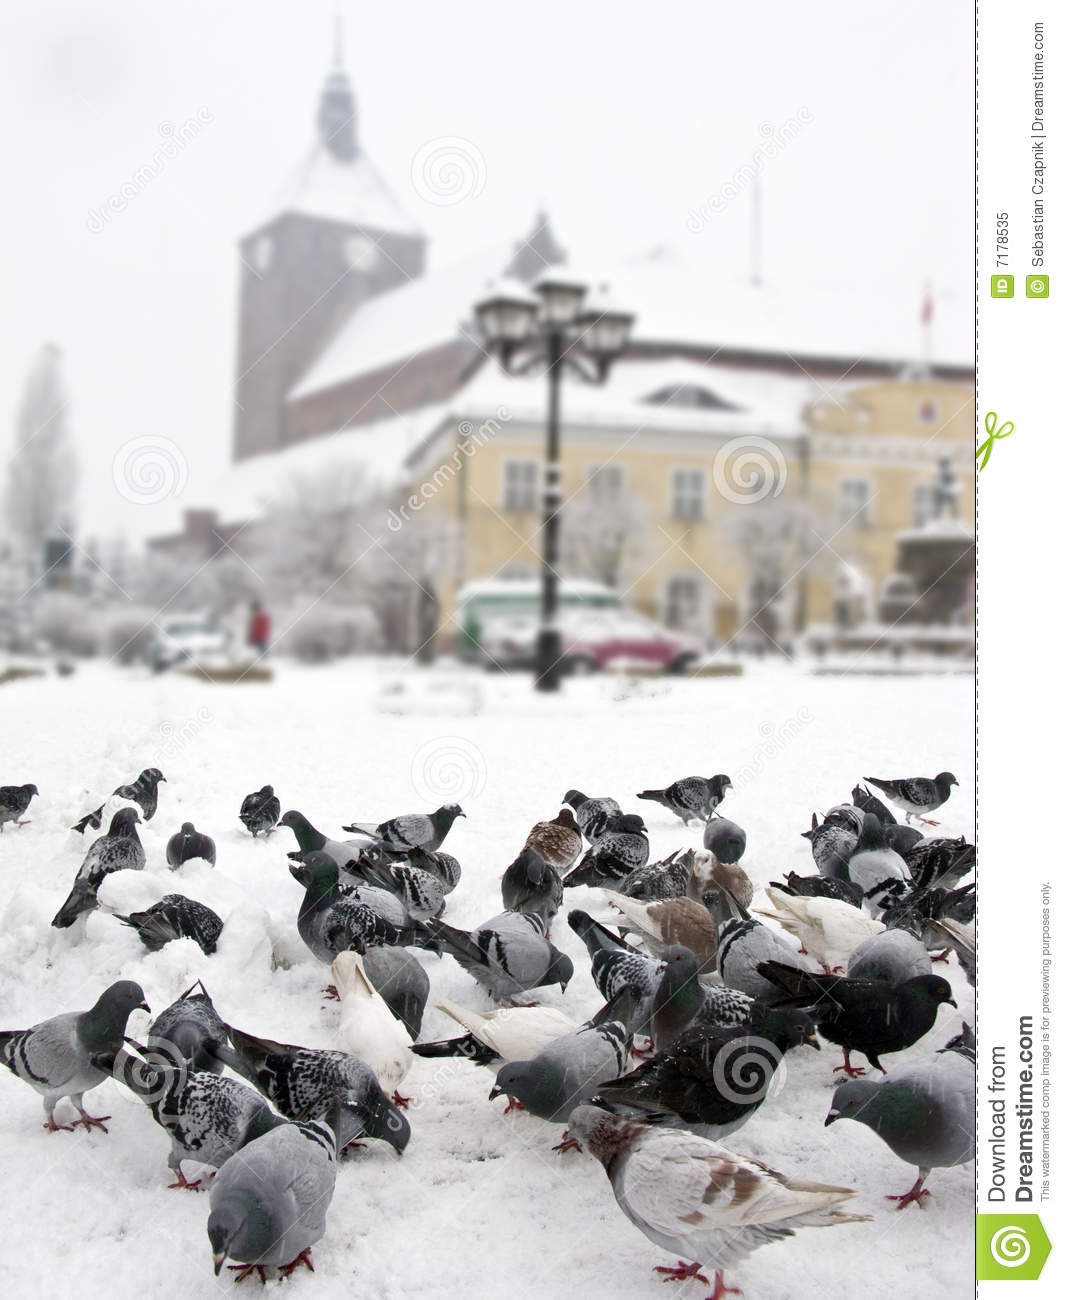 Pigeons in winter city